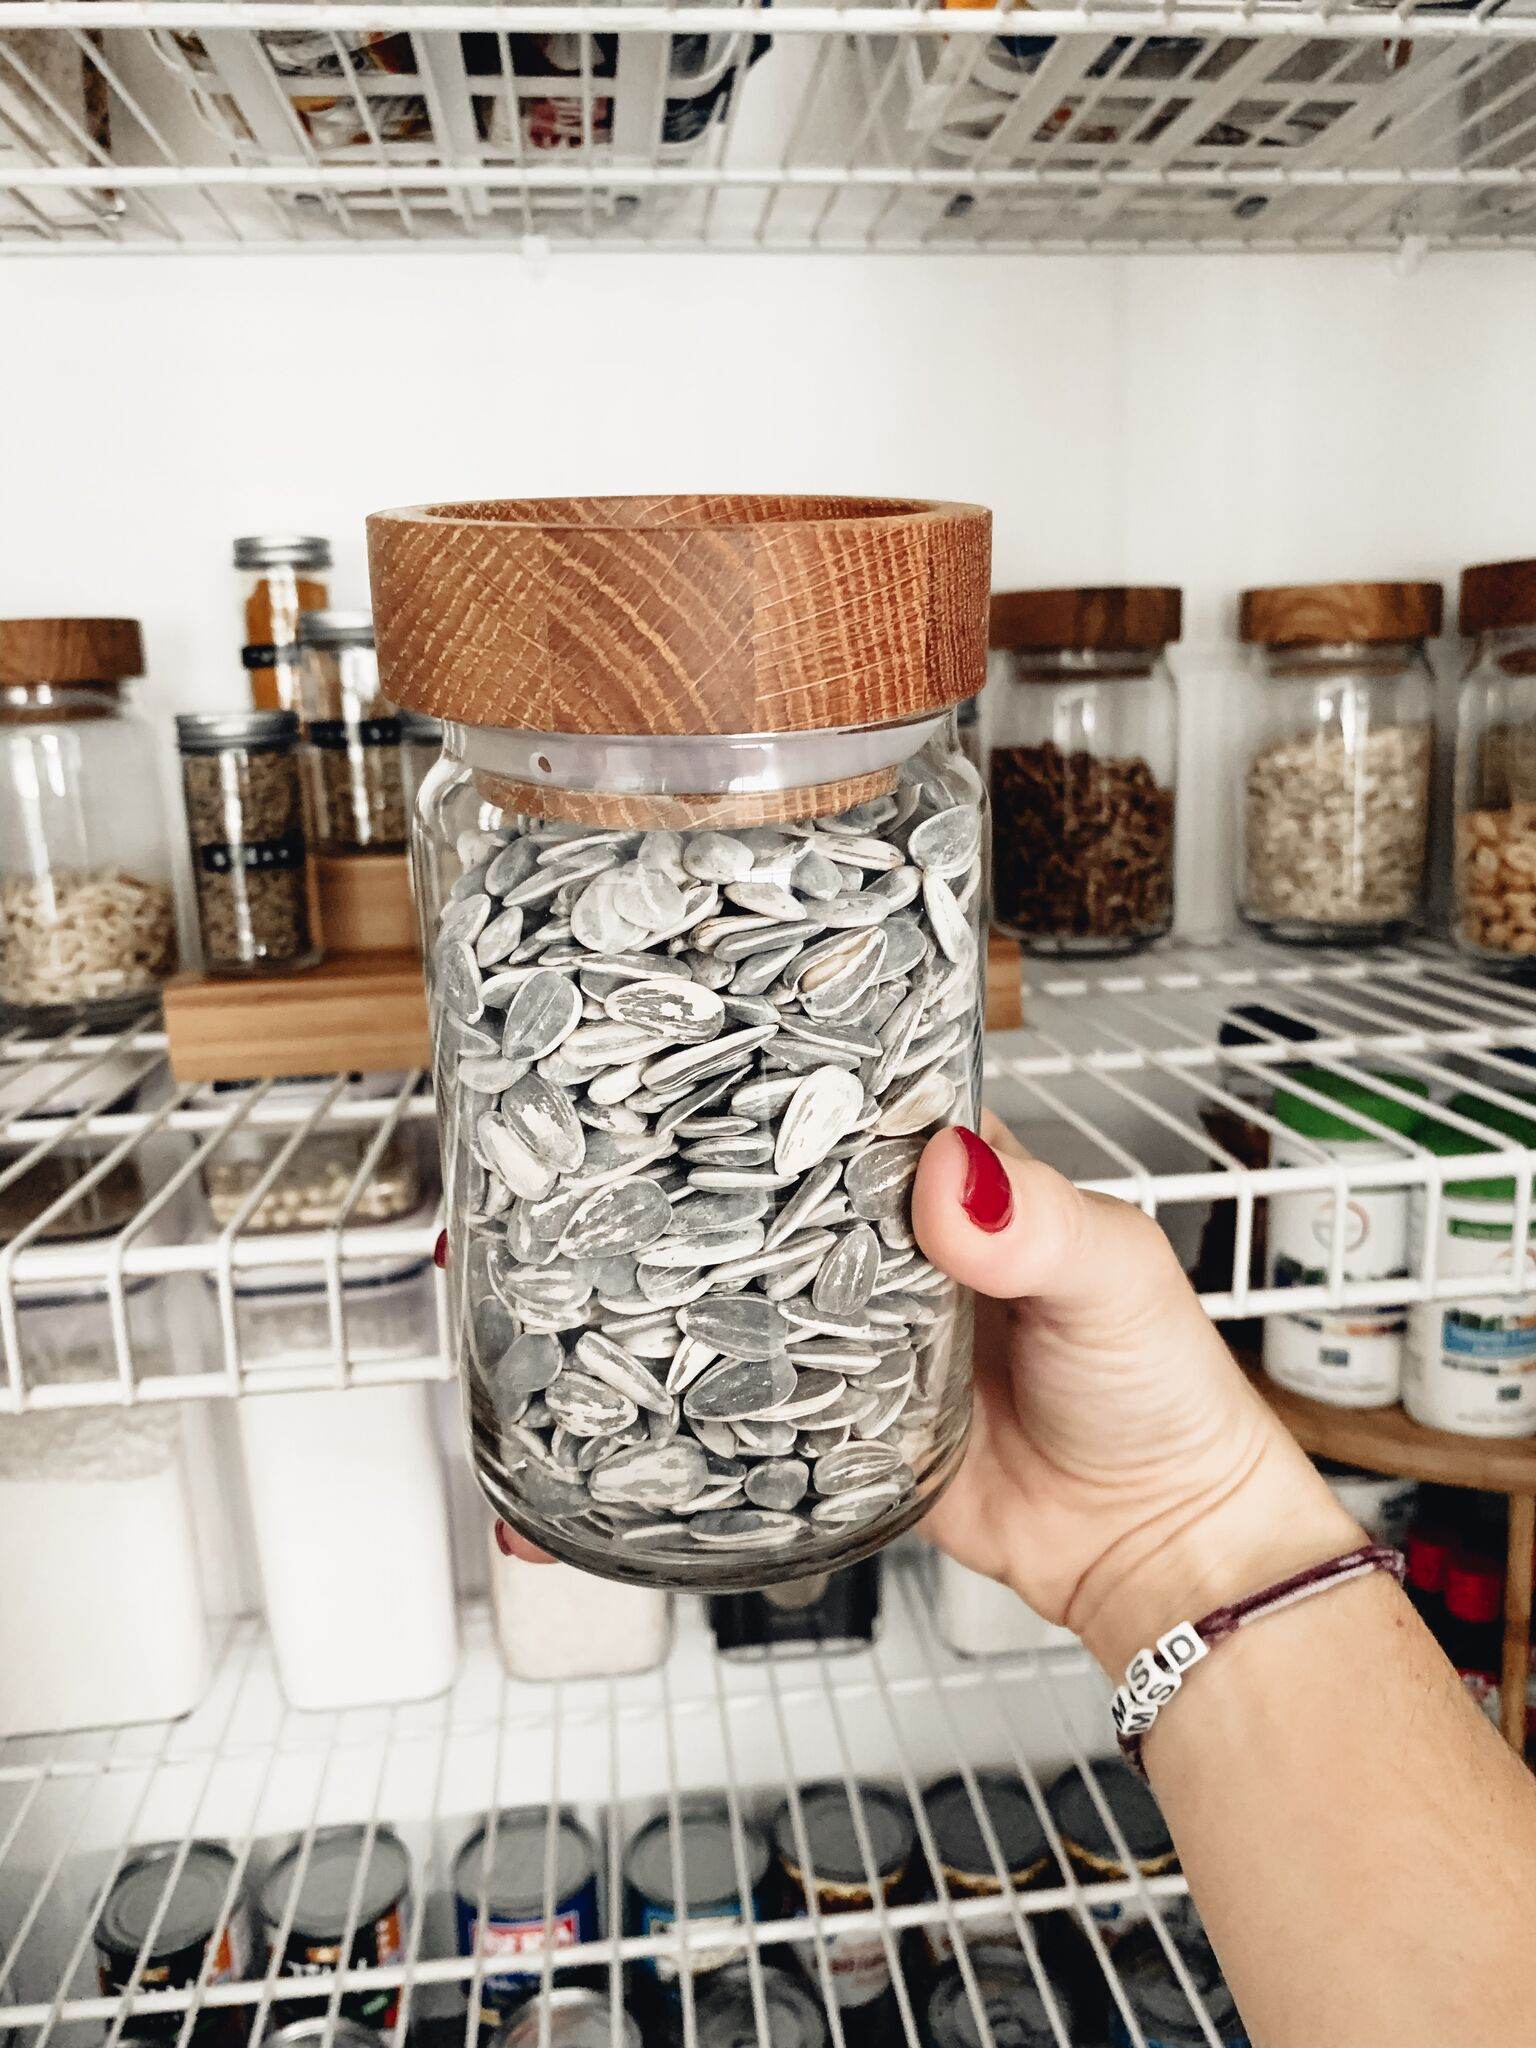 BEFORE + AFTER FRIDGE AND PANTRY OVERHAUL WITH THE CONTAINER STORE //5 steps to your dream pantry & fridge